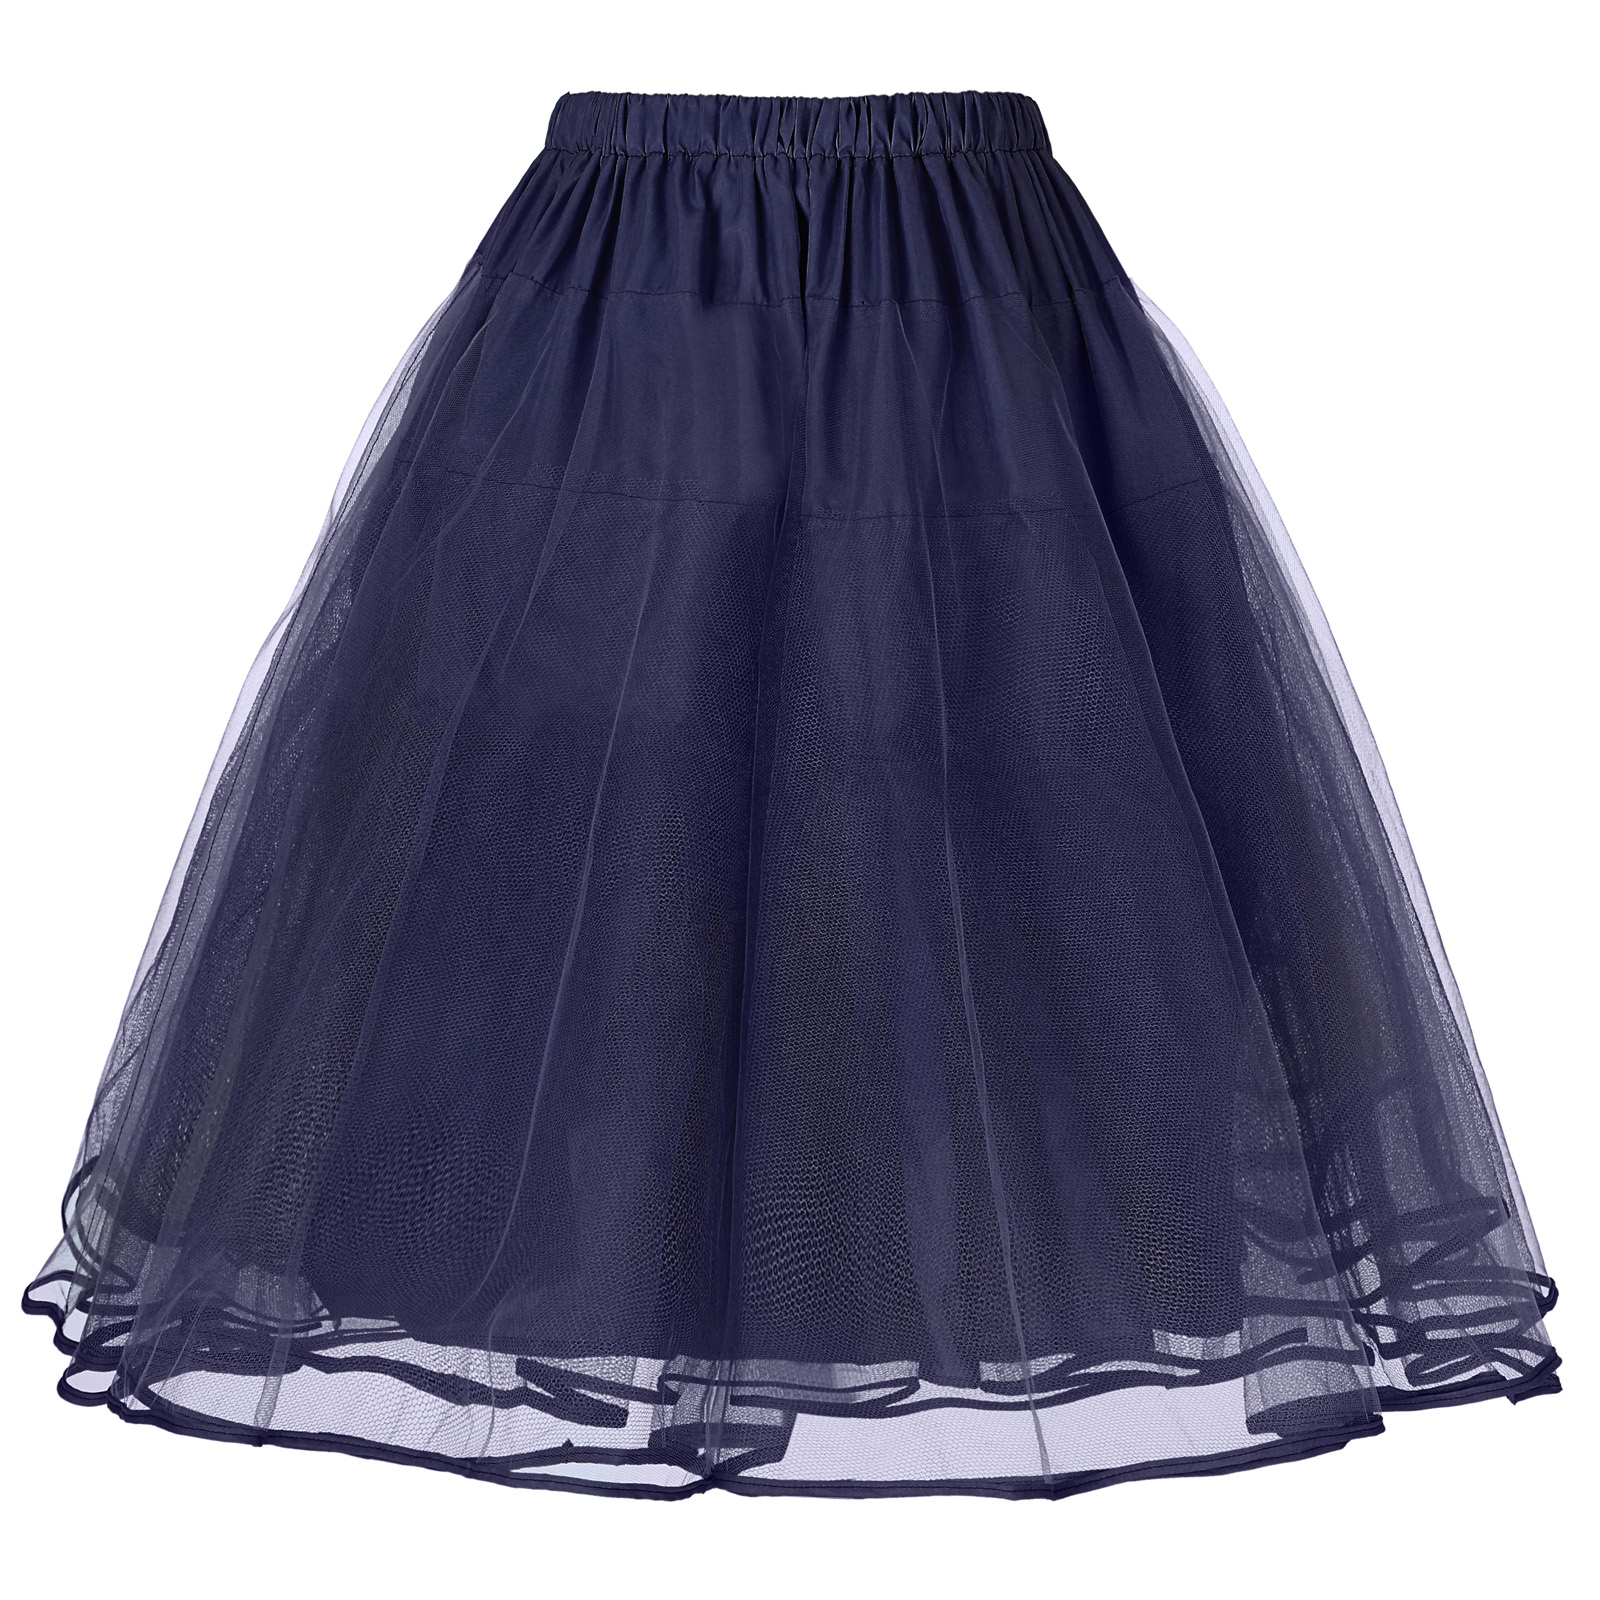 New Fashion Women's Luxury Retro Skirt Vintage 3 Layers Tulle Netting Petticoat  Women's High Waist Pleated Solid Color Half Len